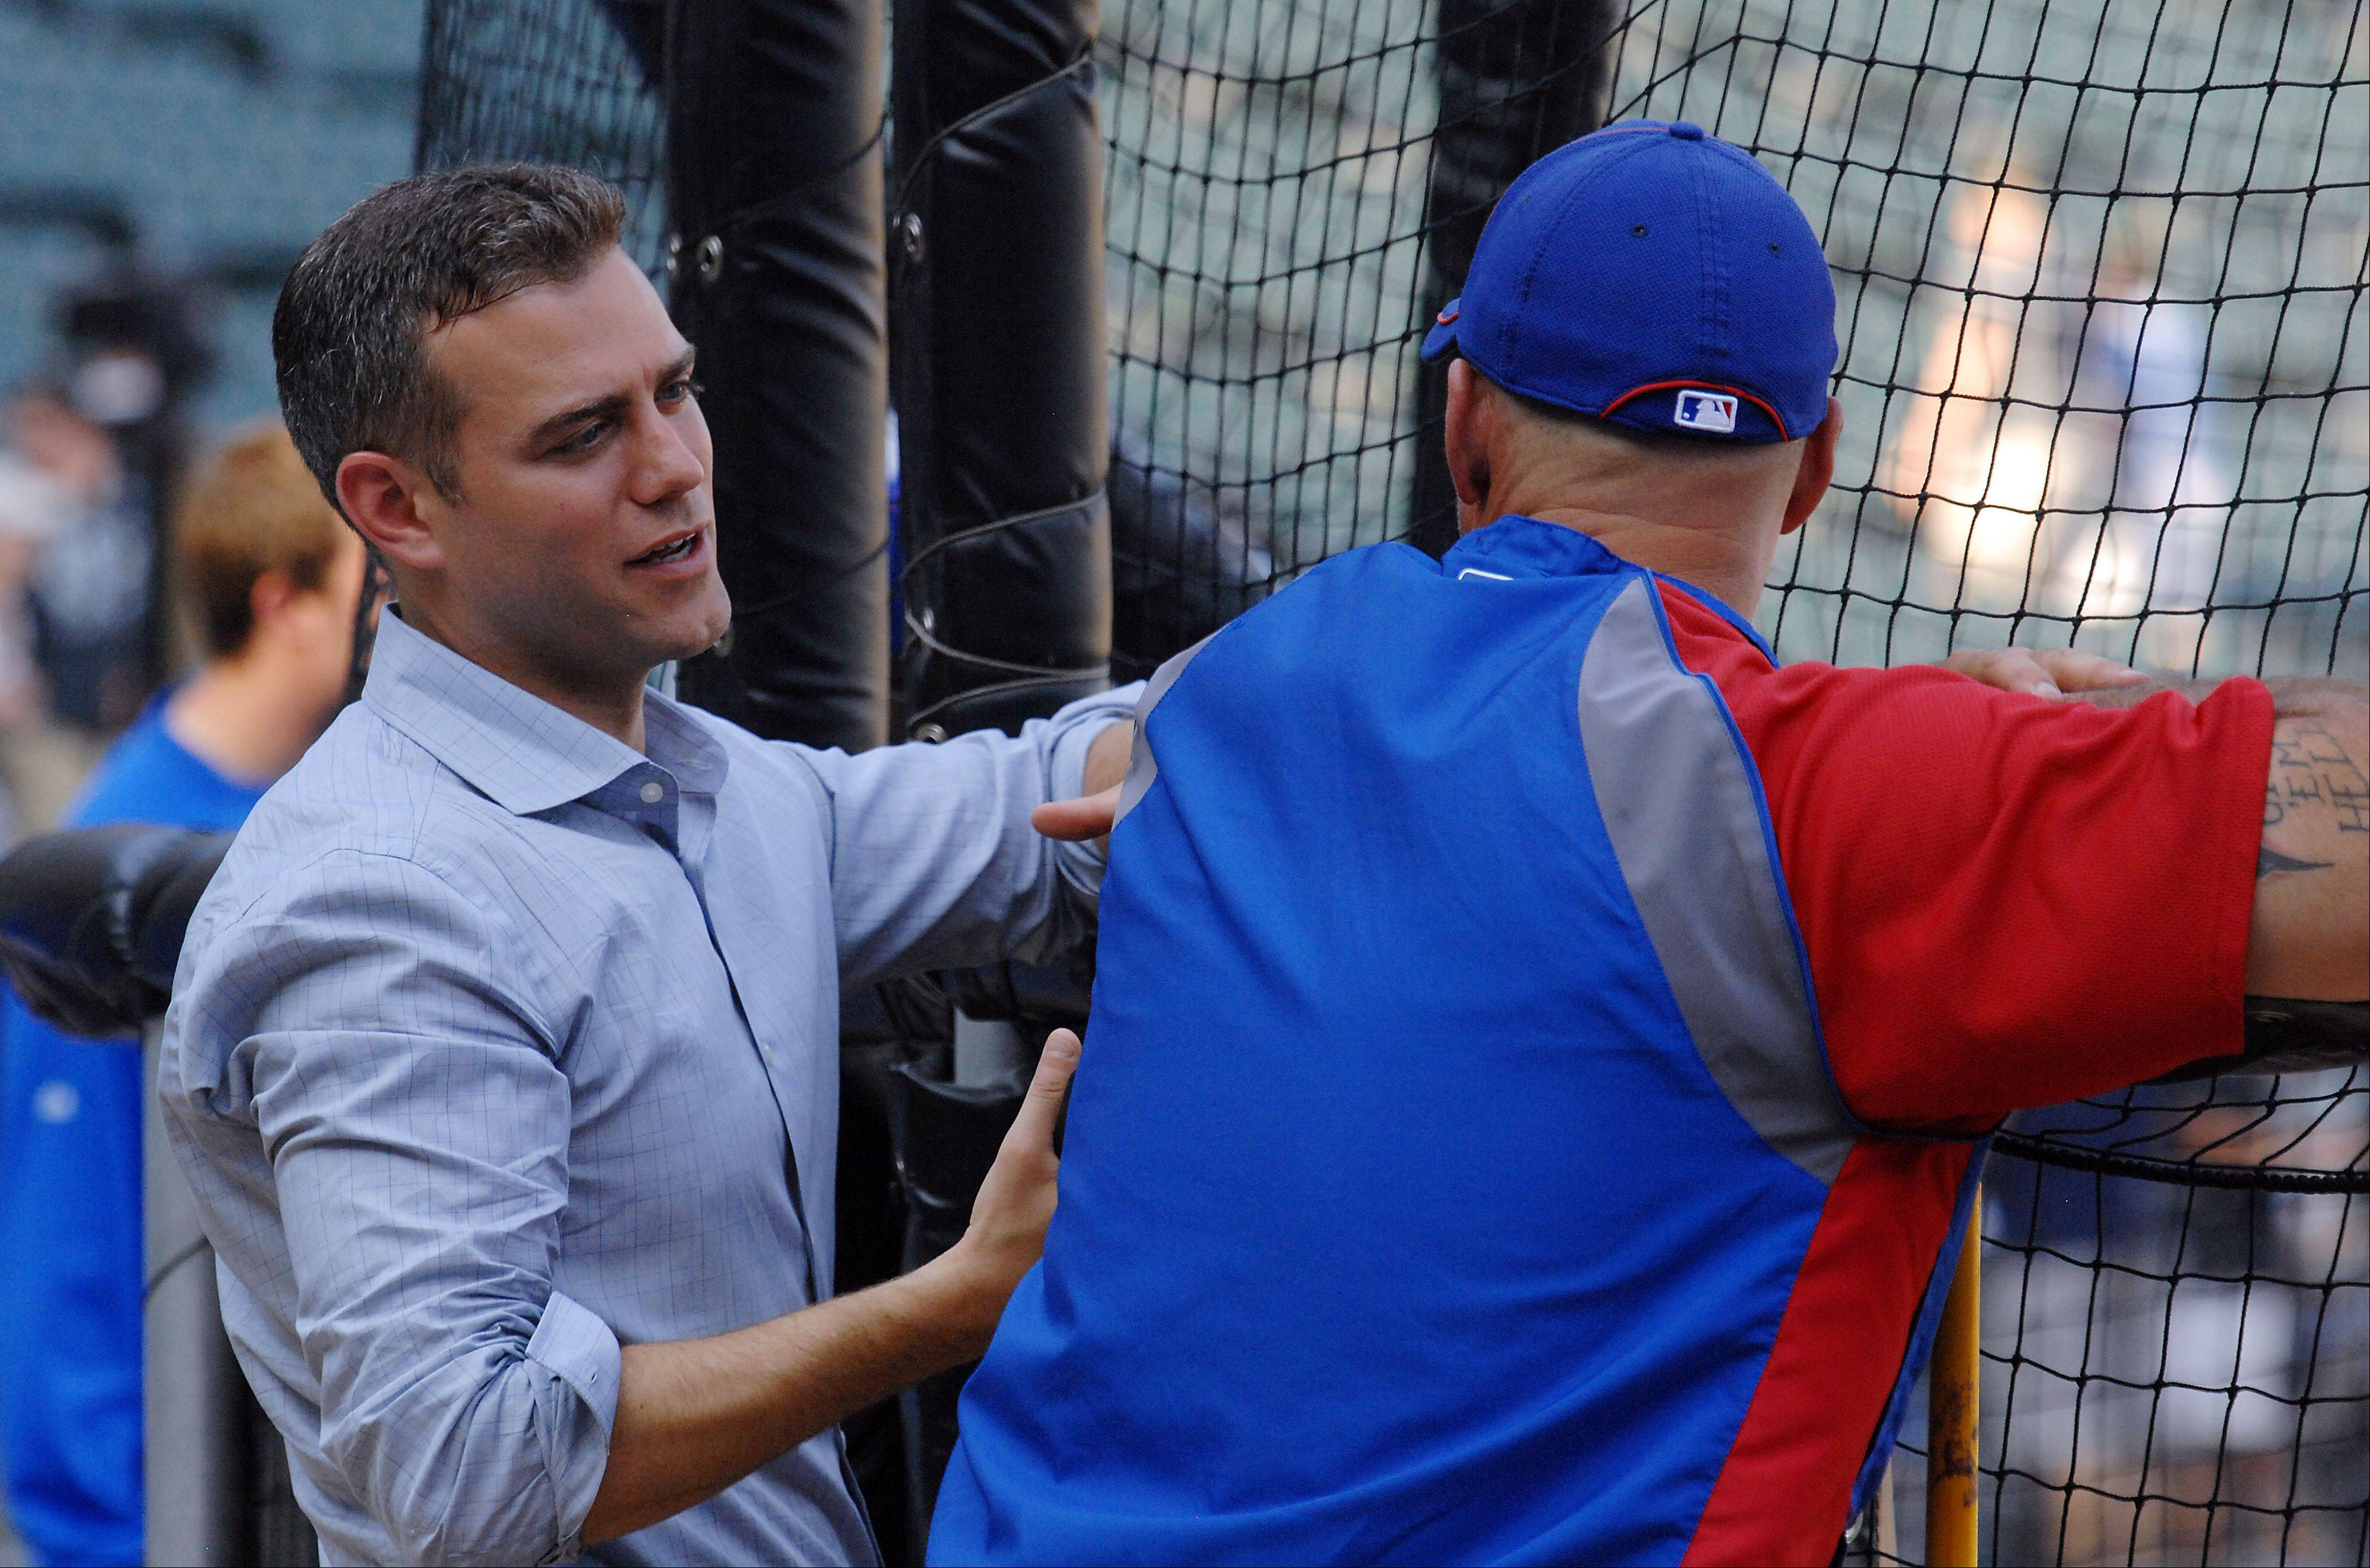 While Cubs president of baseball operations Theo Epstein, here talking with Cubs manager Dale Sveum before this year's City Series with the White Sox, is only in Year One of the rebuilding process, Mike North contends next season is a critical one for Sveum's future.